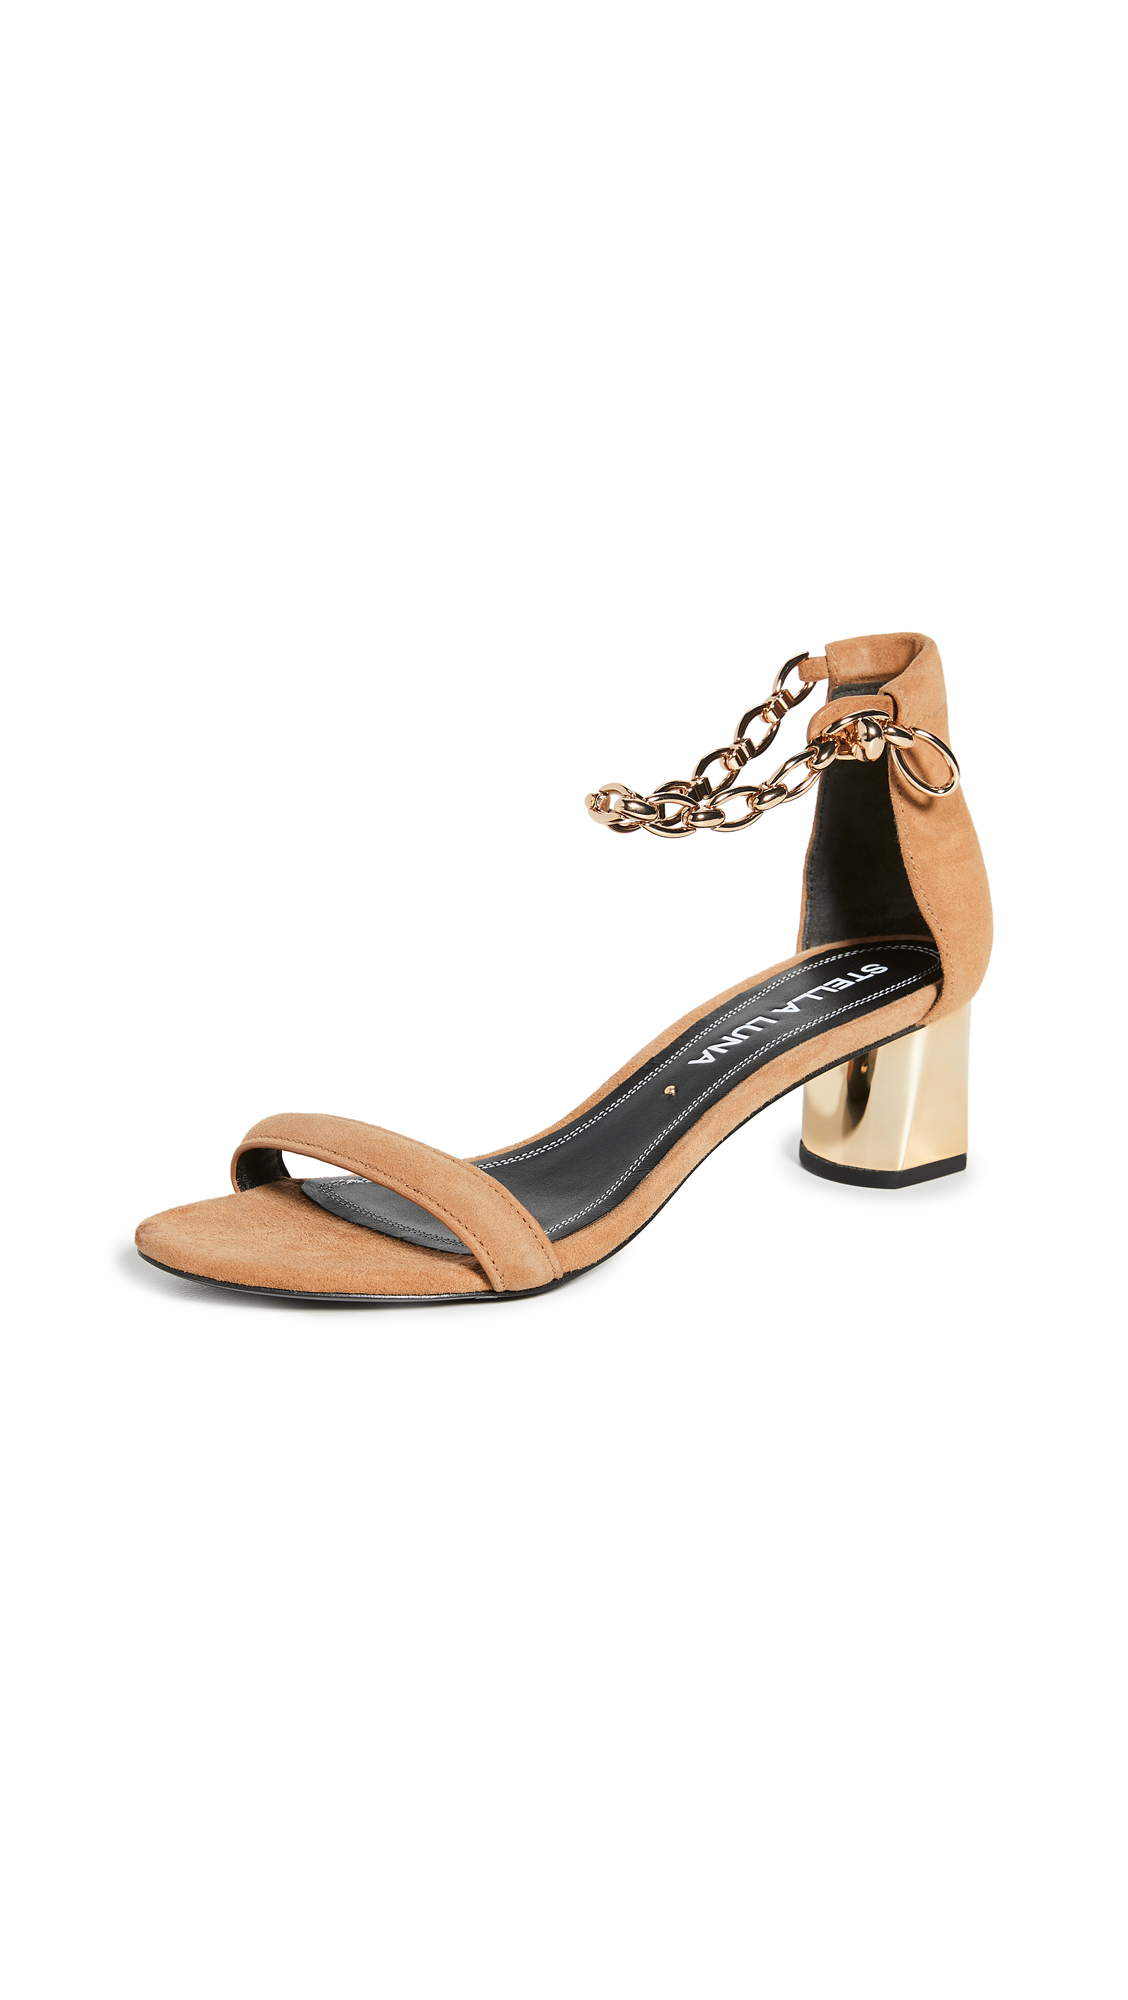 Stella Luna Ankle Chain Sandals - 50% Off Sale